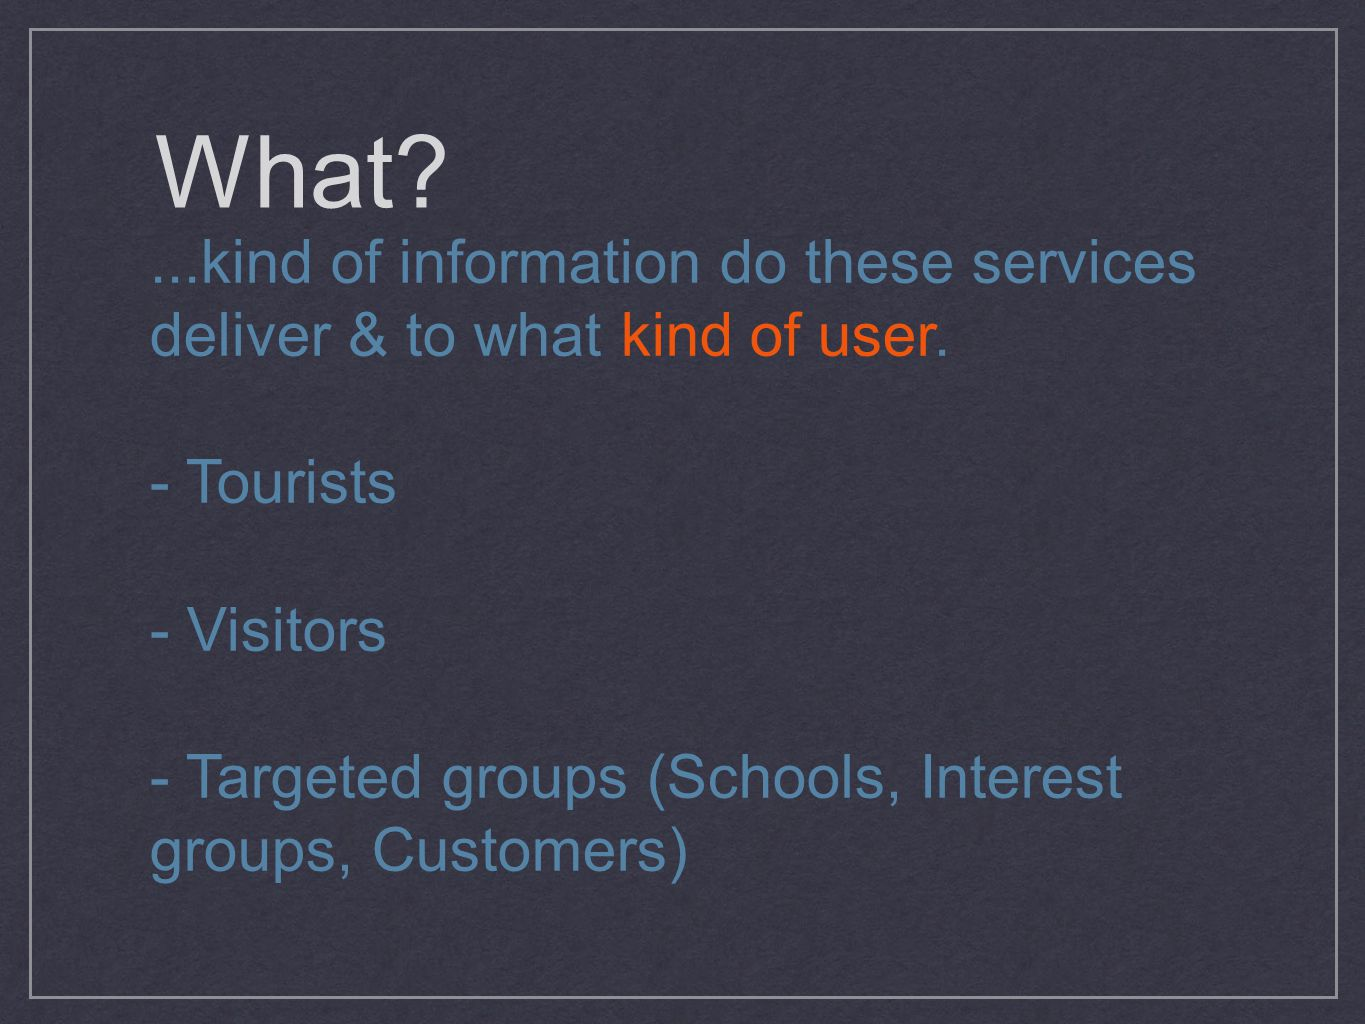 What ...kind of information do these services deliver & to what kind of user.